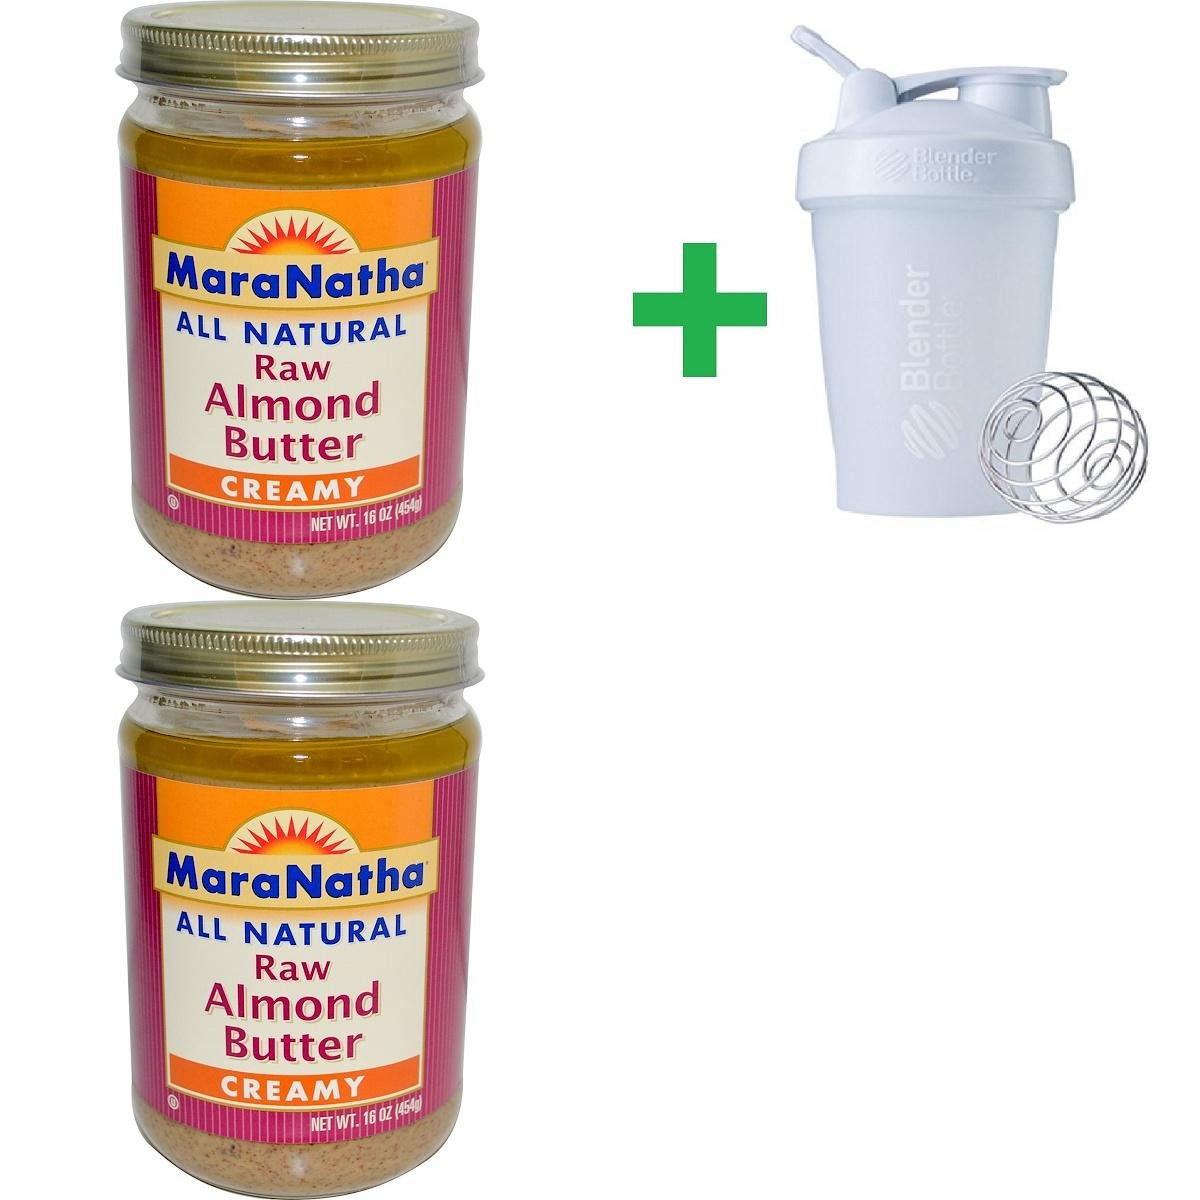 MaraNatha, All Natural Raw Almond Butter, Creamy, 16 oz (454 g) (2 PACKS) + Assorted Sundesa, BlenderBottle, Classic With Loop, 20 oz